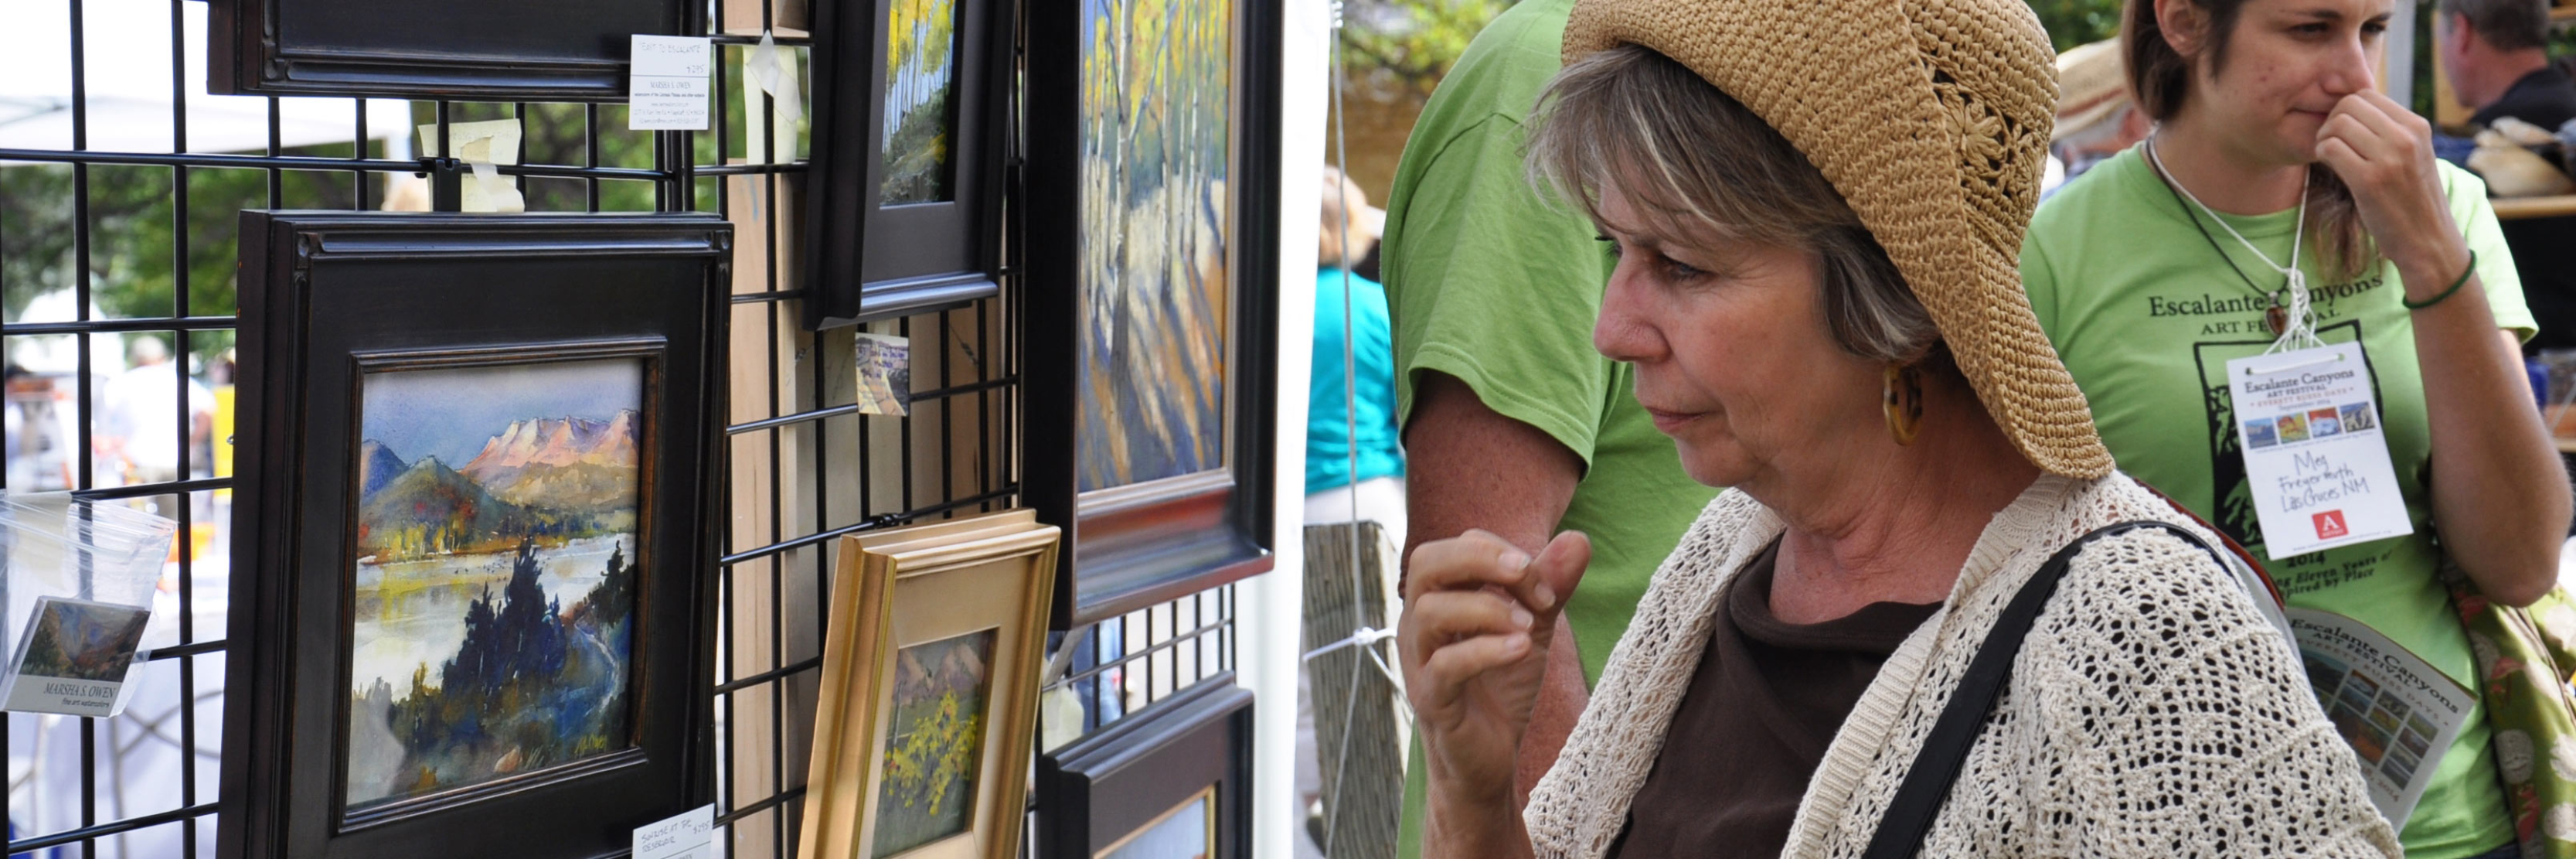 escalante-canyons-art-festival-exhibits